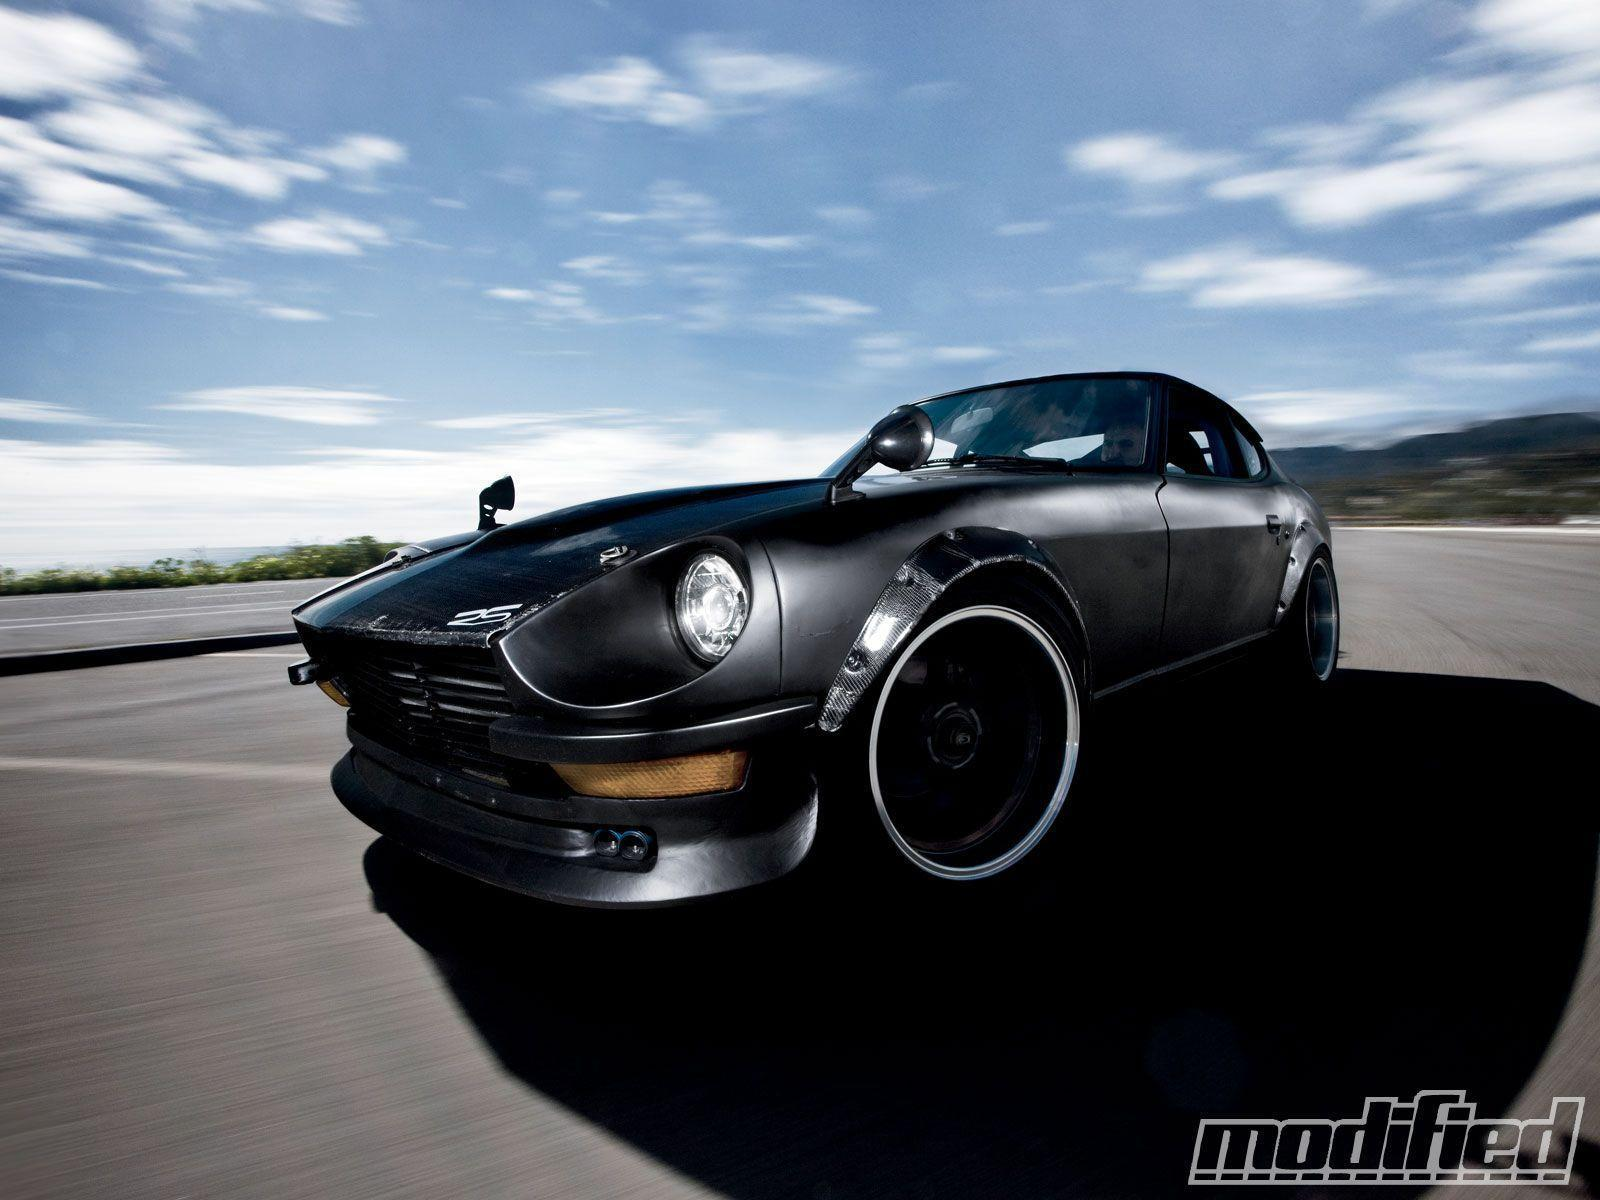 Datsun 240Z Wallpapers - Wallpaper Cave